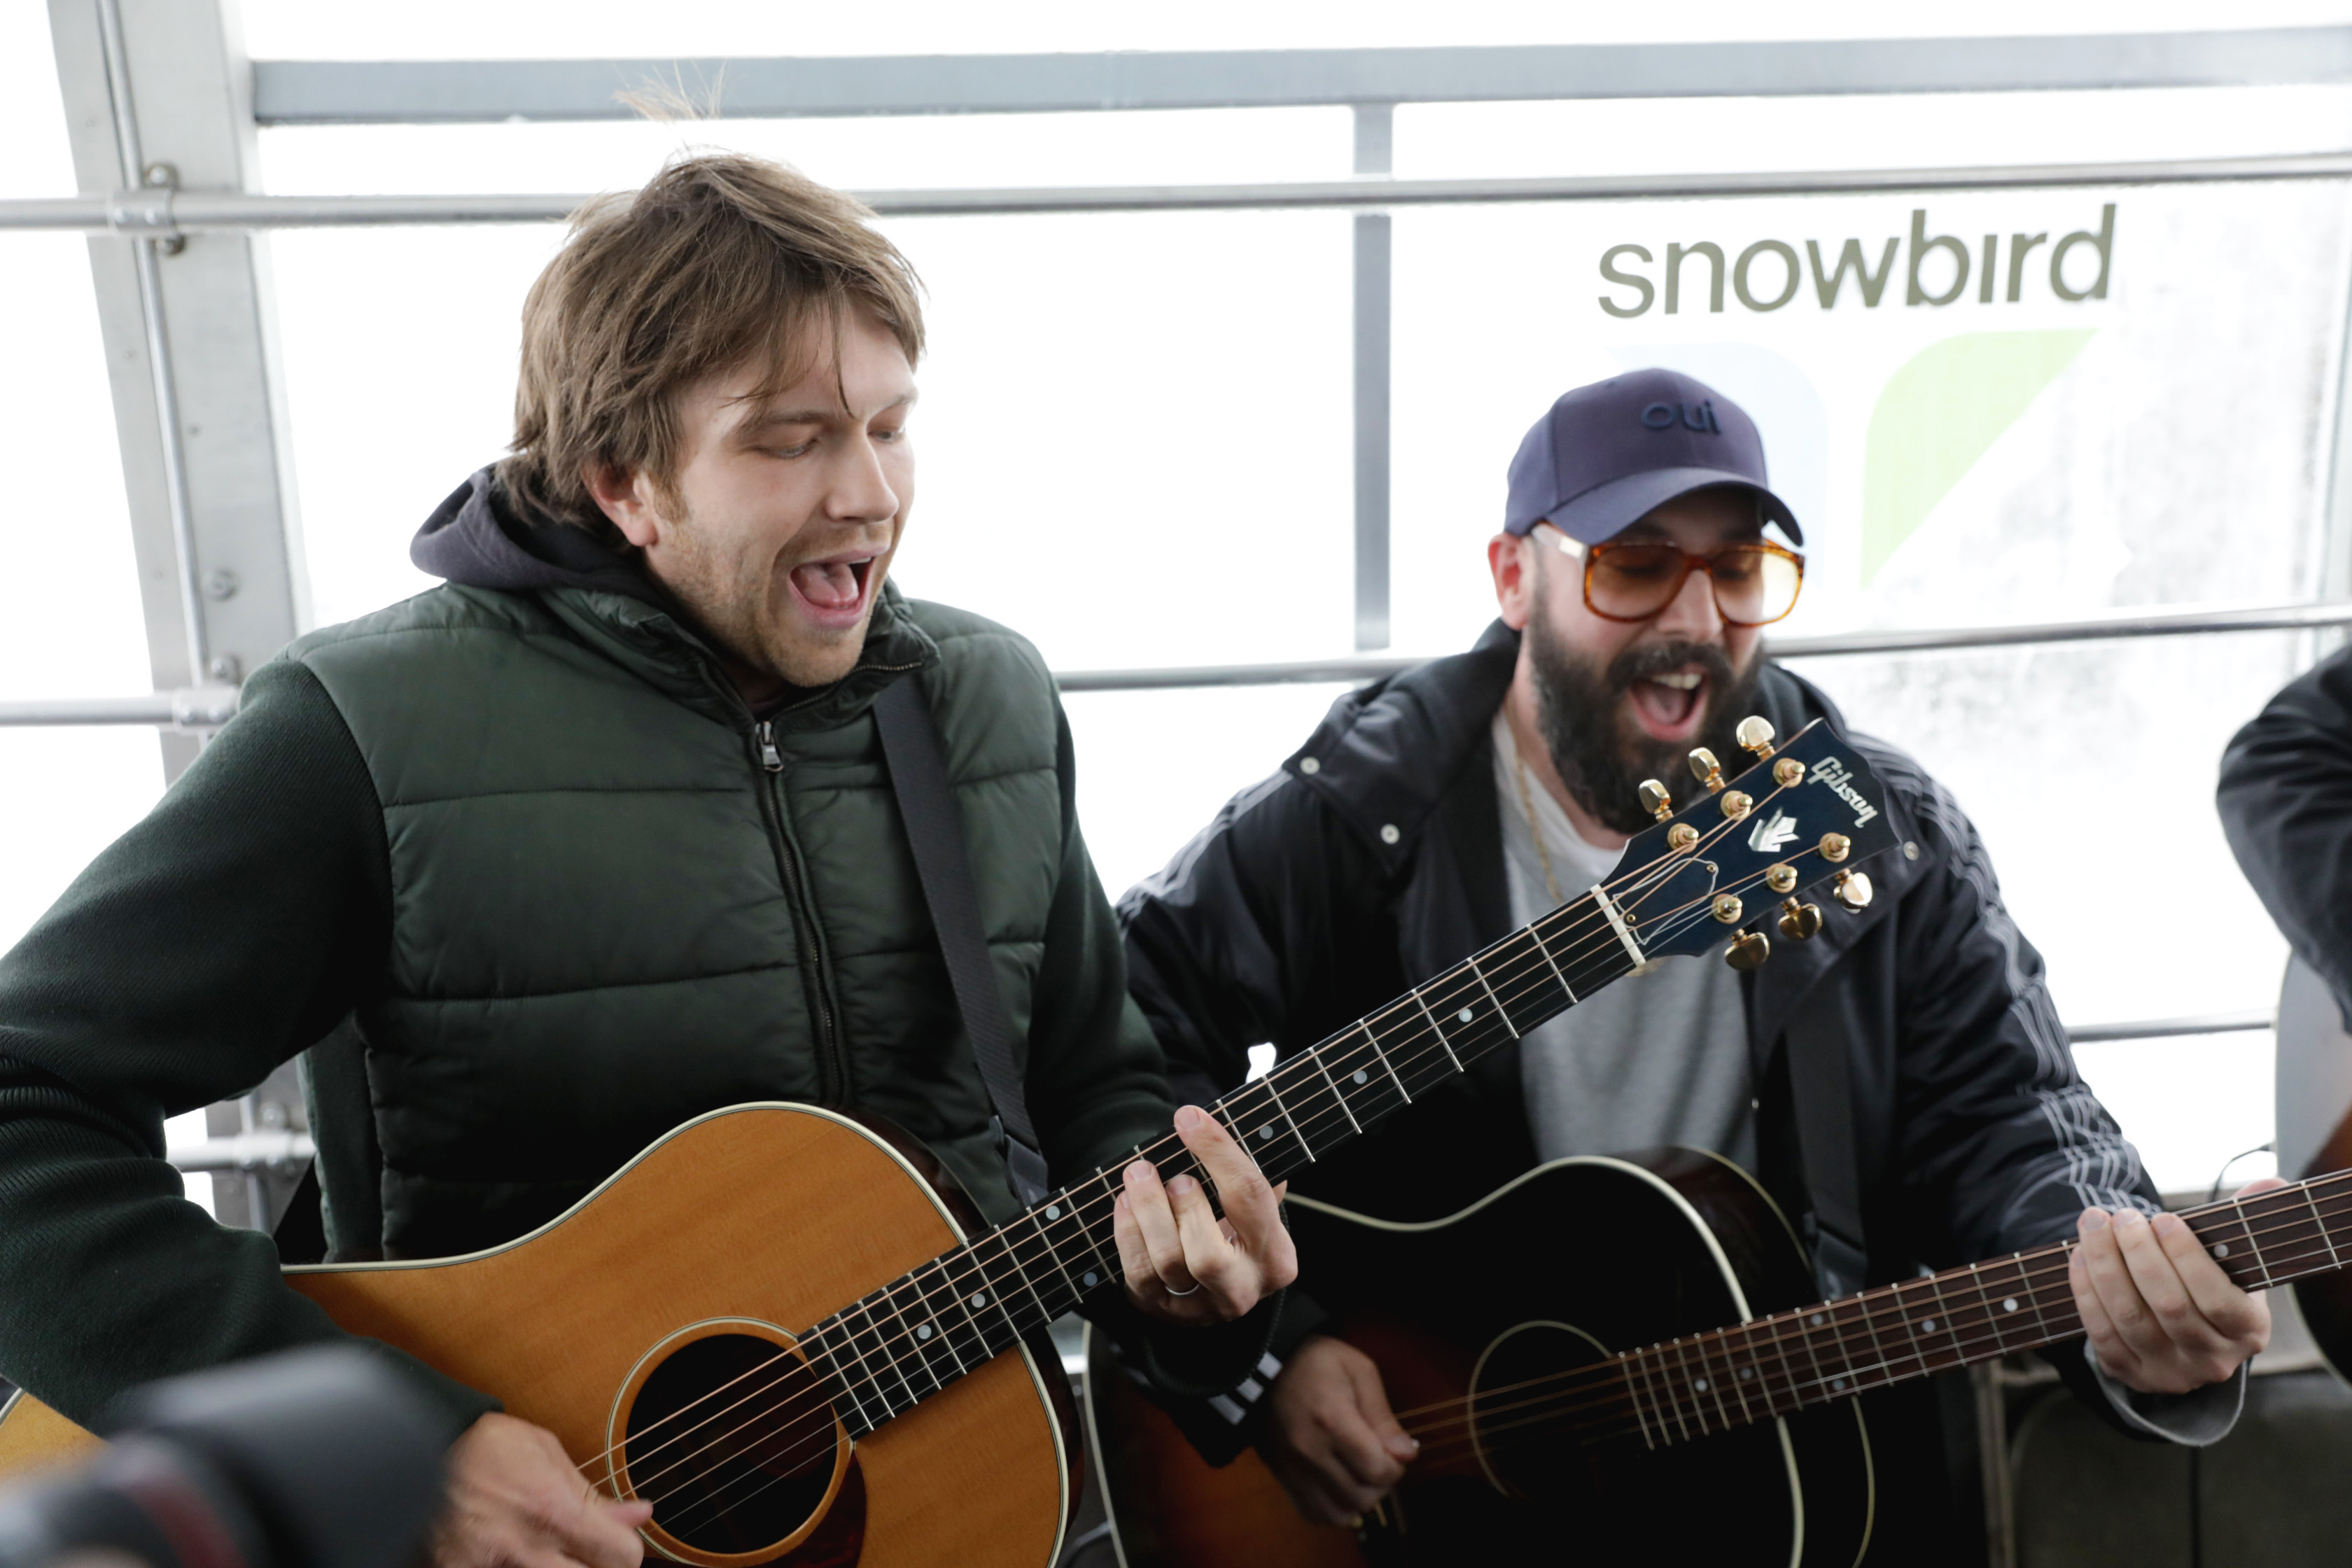 Andy Ross and Tim Nordwind playing and singing along as the tram climbs the mountains. Photo: Lmsorenson.net